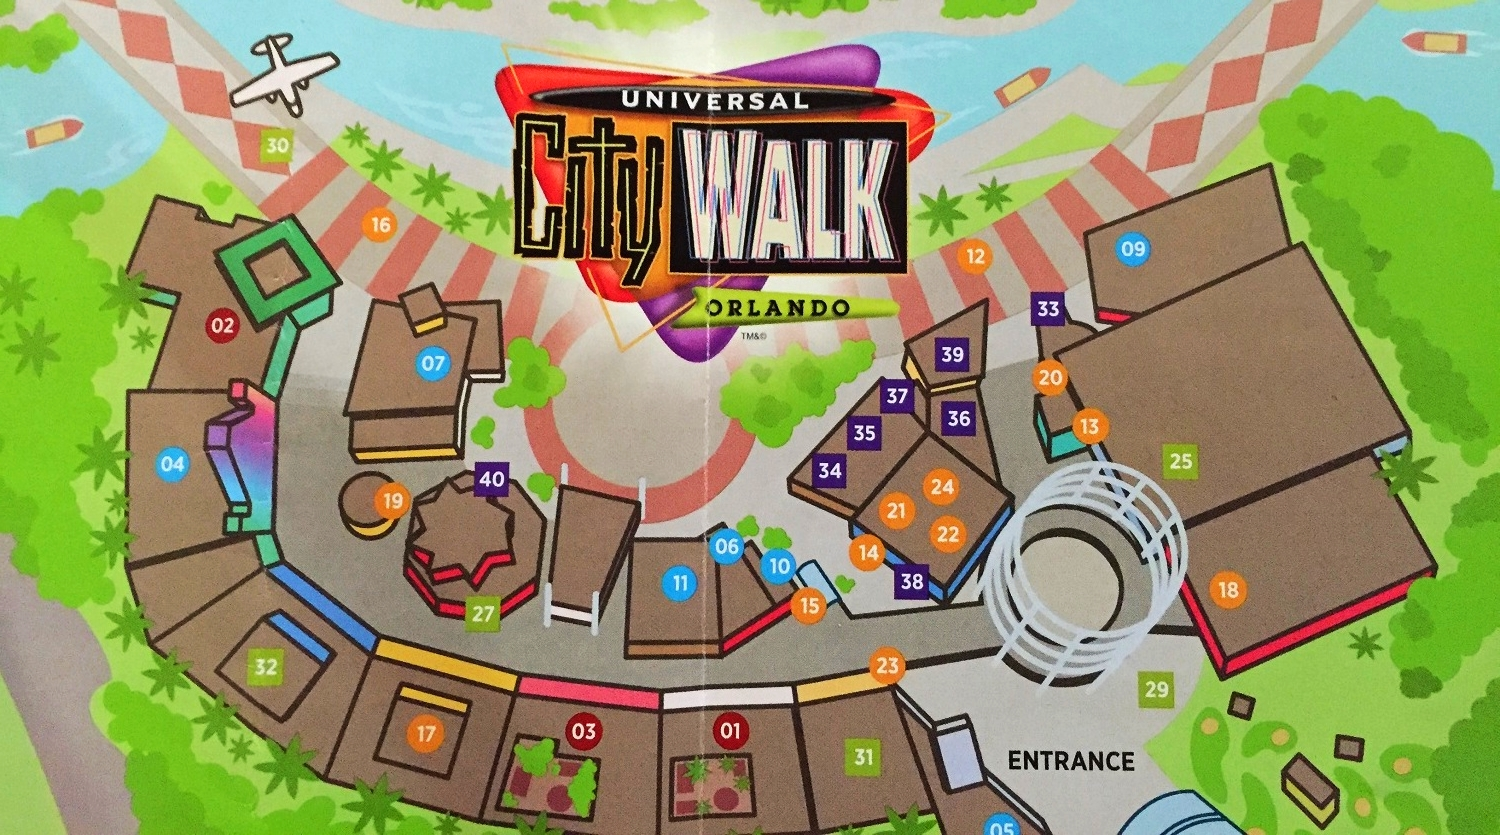 The Universal Studios Store in CityWalk is represented by the number 40 on this map.